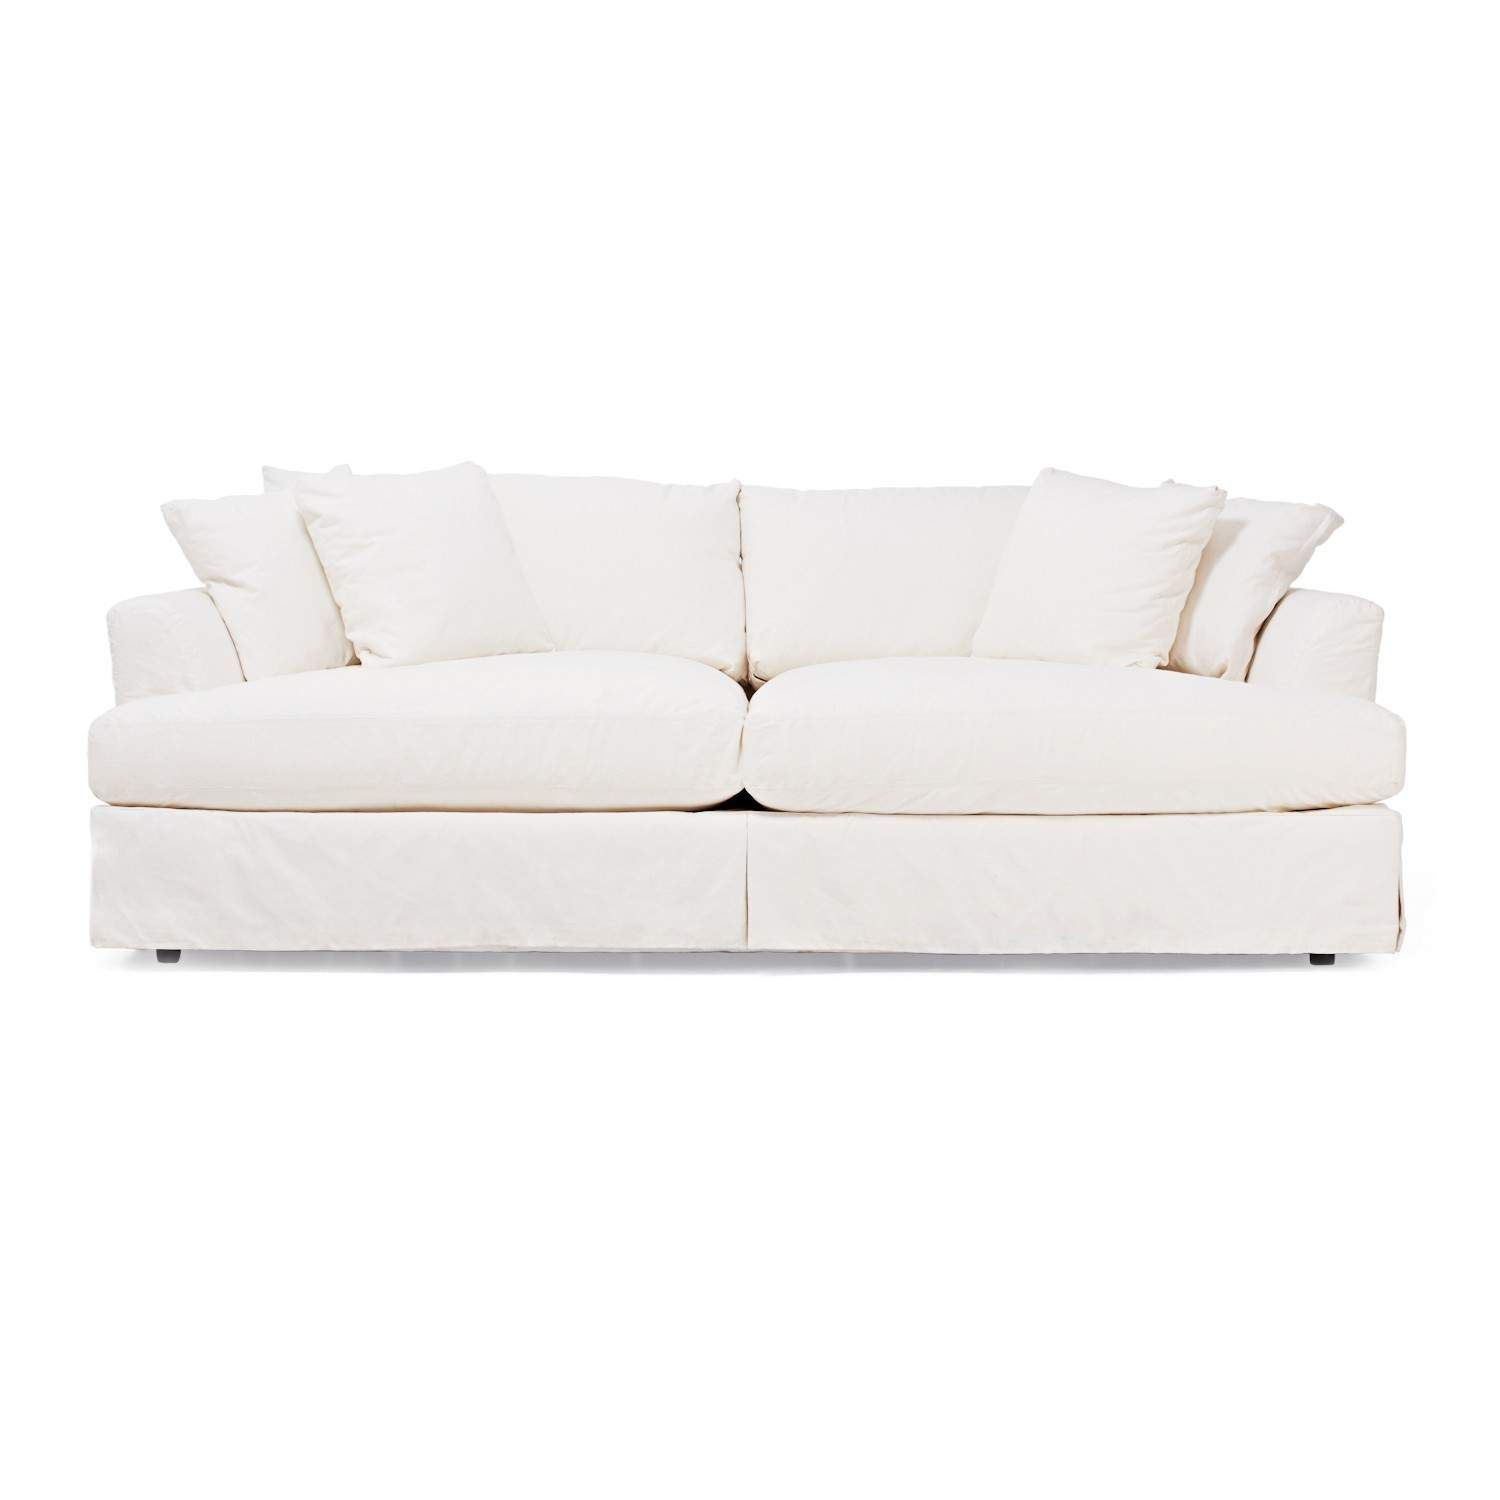 Swell Exclusively At Abc The Marthas Vineyard Sofa Delivers Cozy Ibusinesslaw Wood Chair Design Ideas Ibusinesslaworg